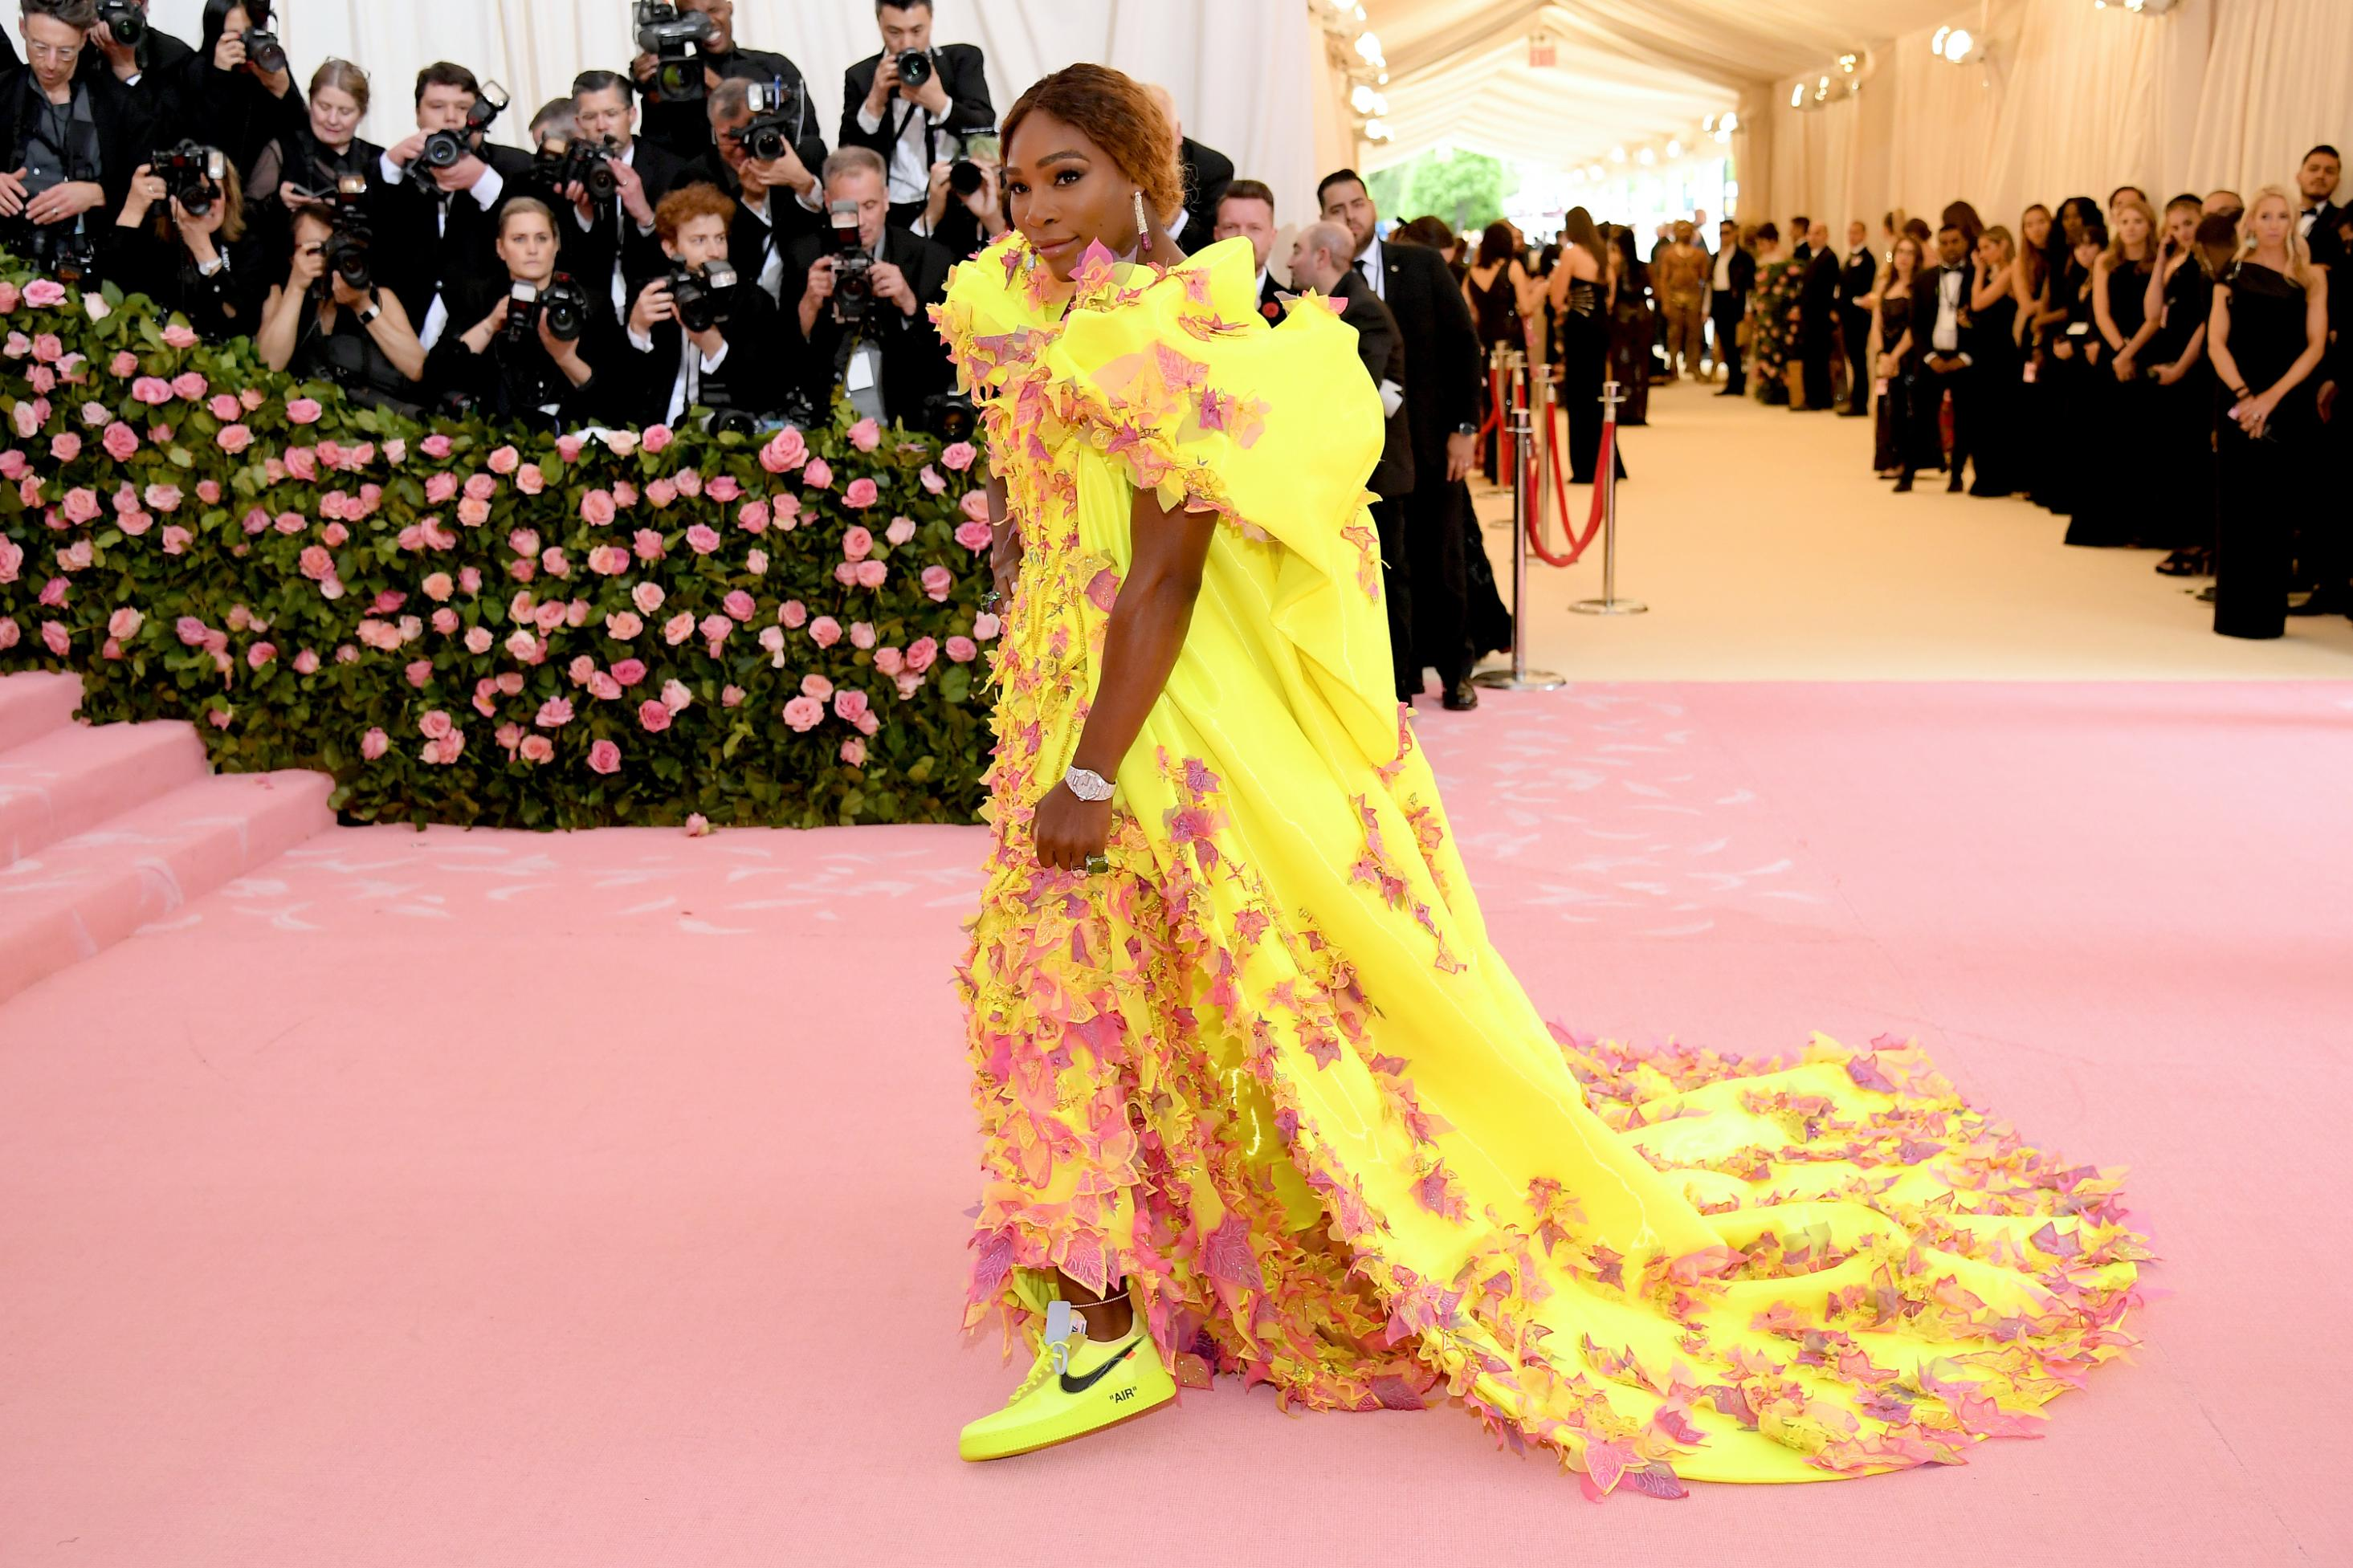 52b616e9c0f41 Met Gala 2019: Best fashion from the red carpet - CNN Style